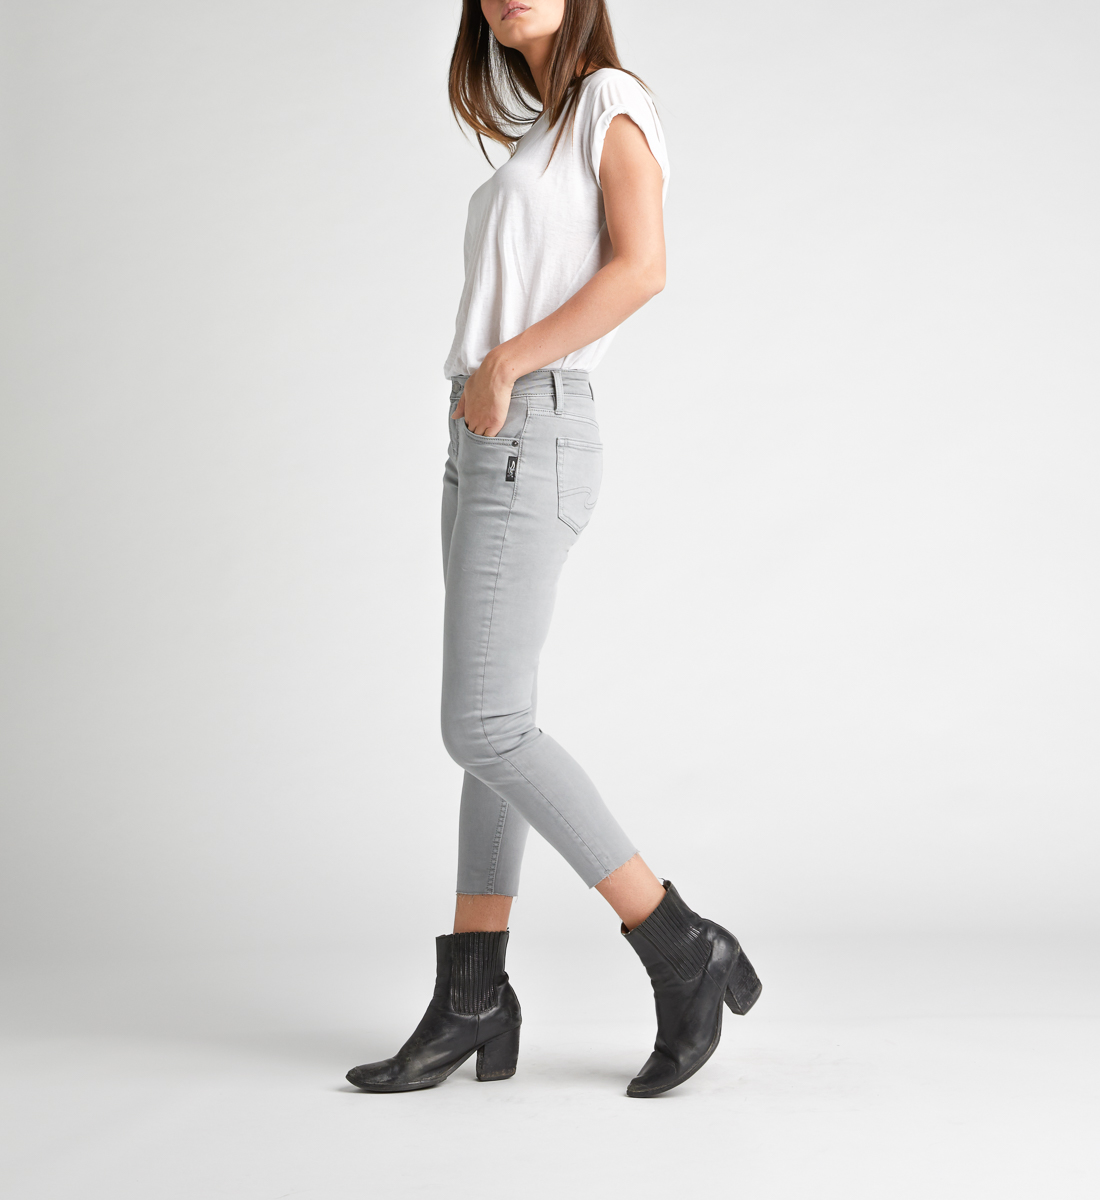 Avery High Rise Skinny Crop Pants,Grey Side